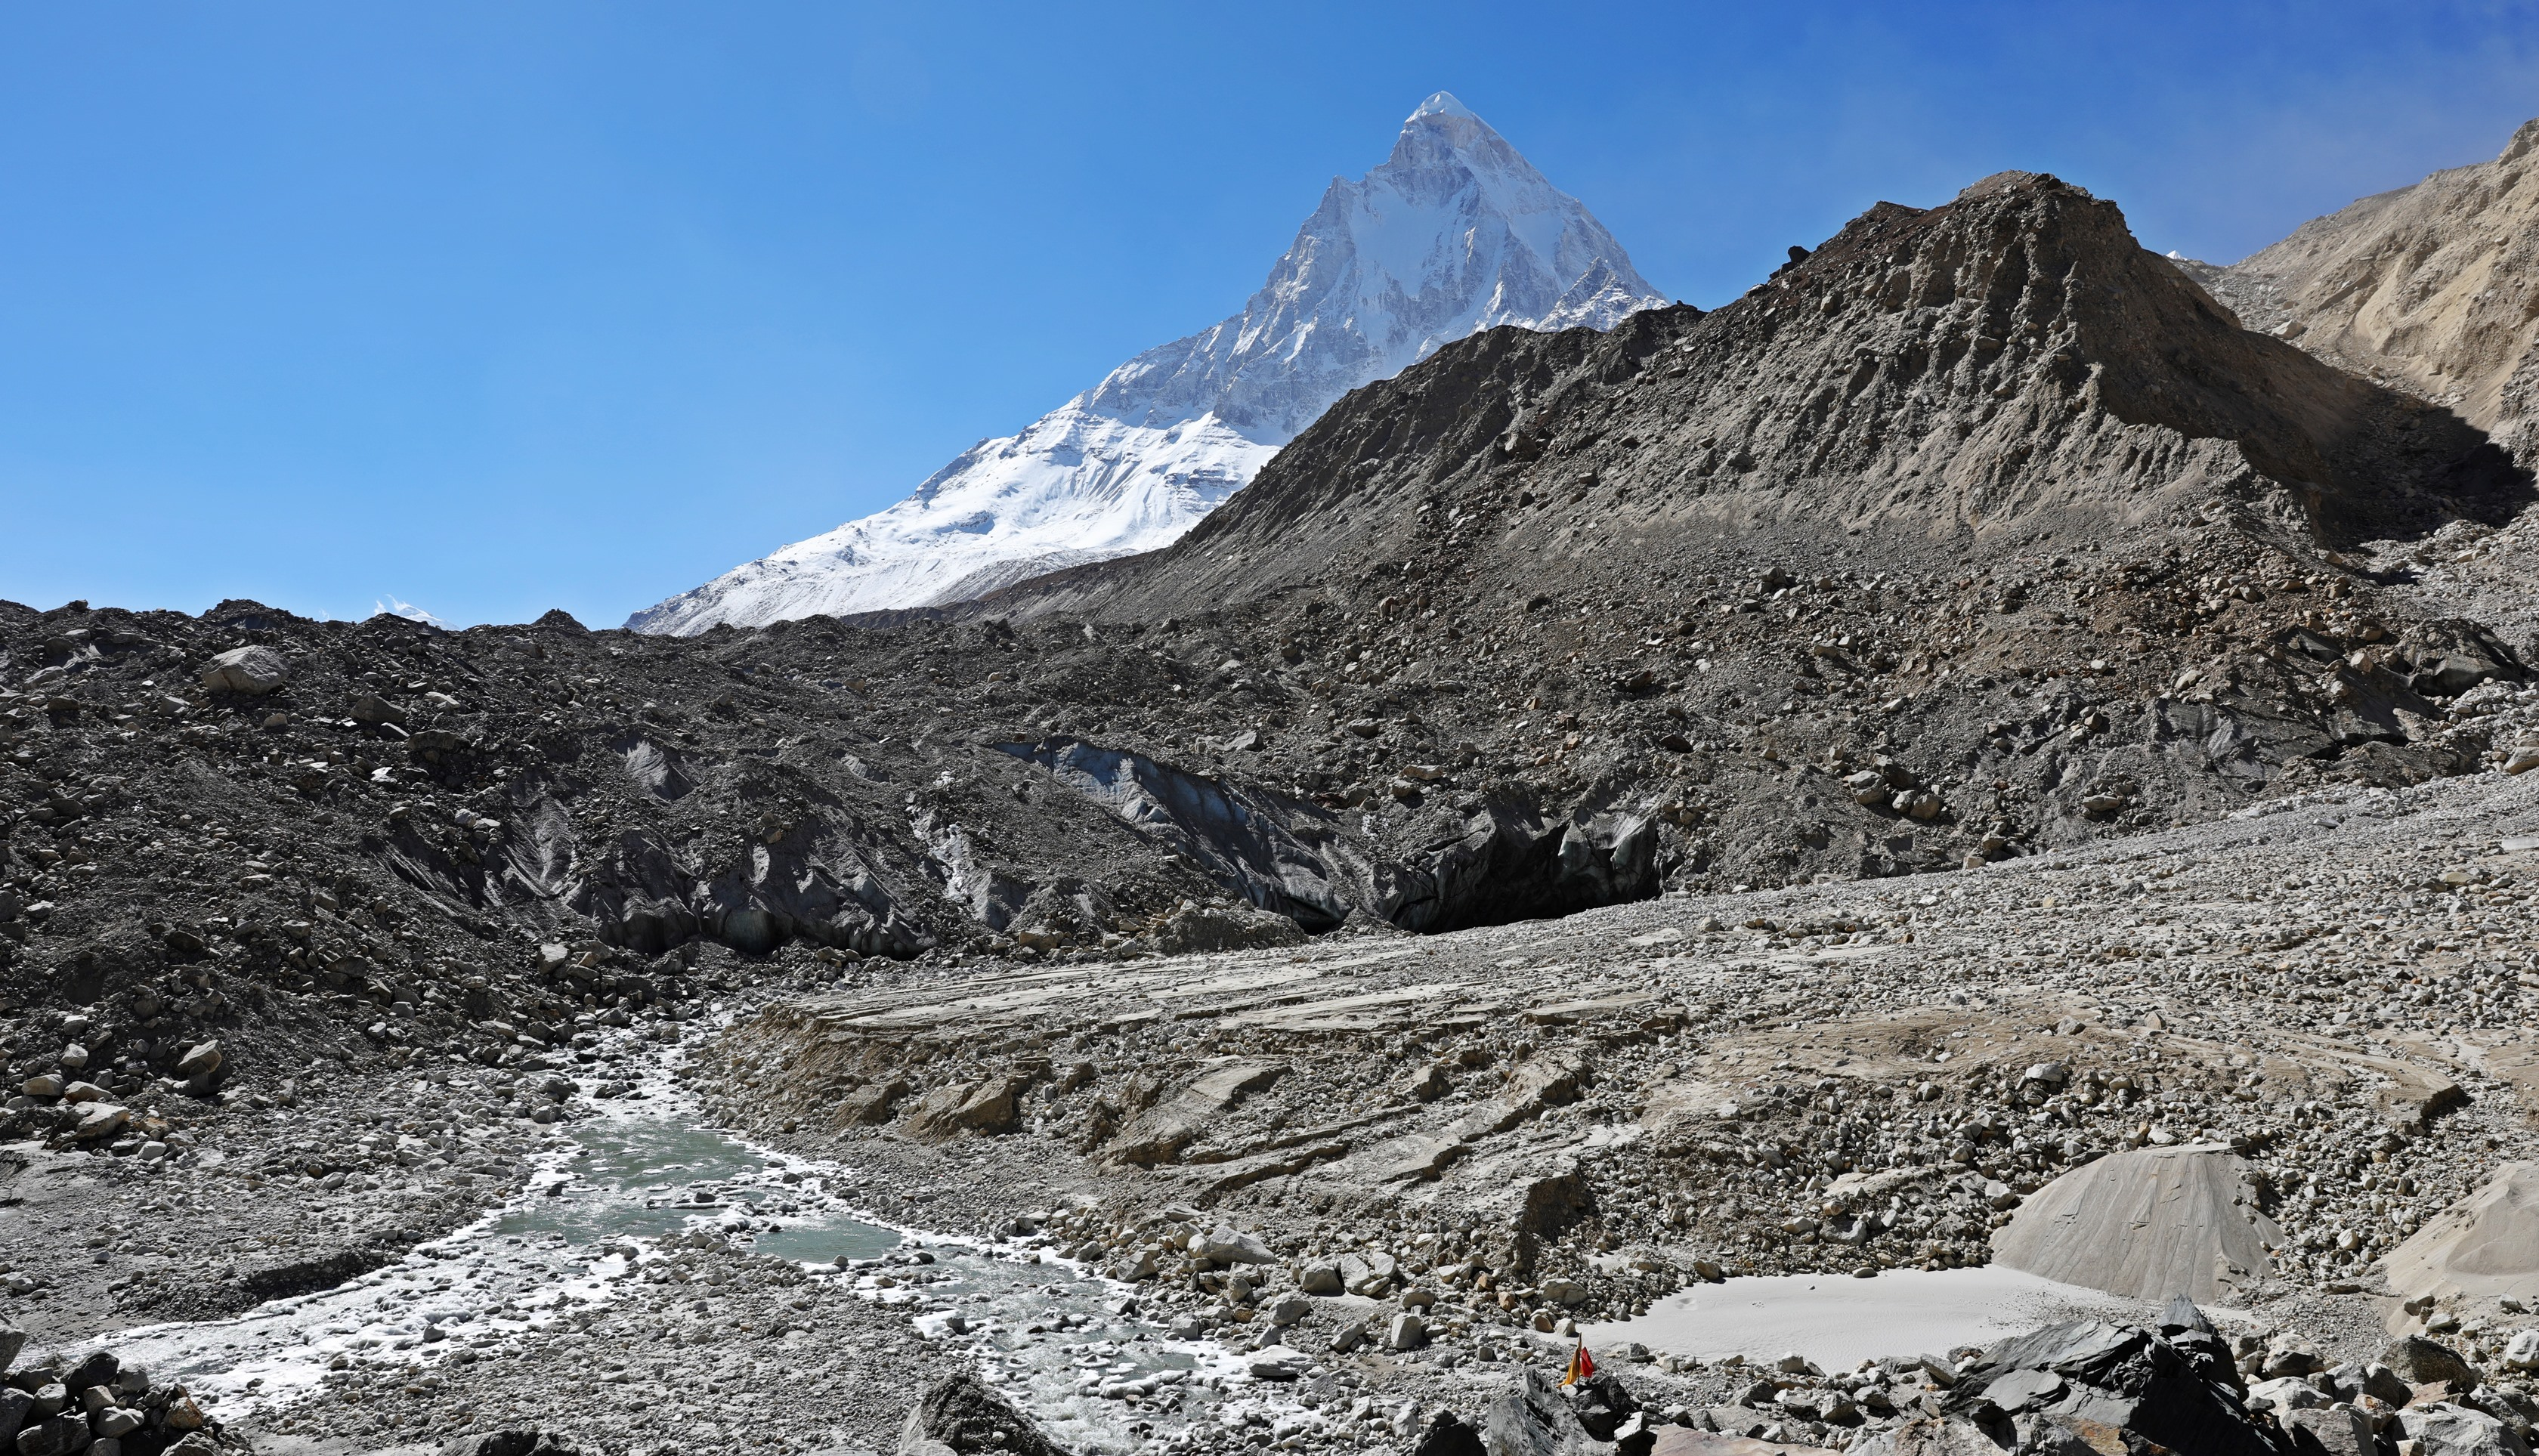 Gaumukh Glacier with Mt. Shivling